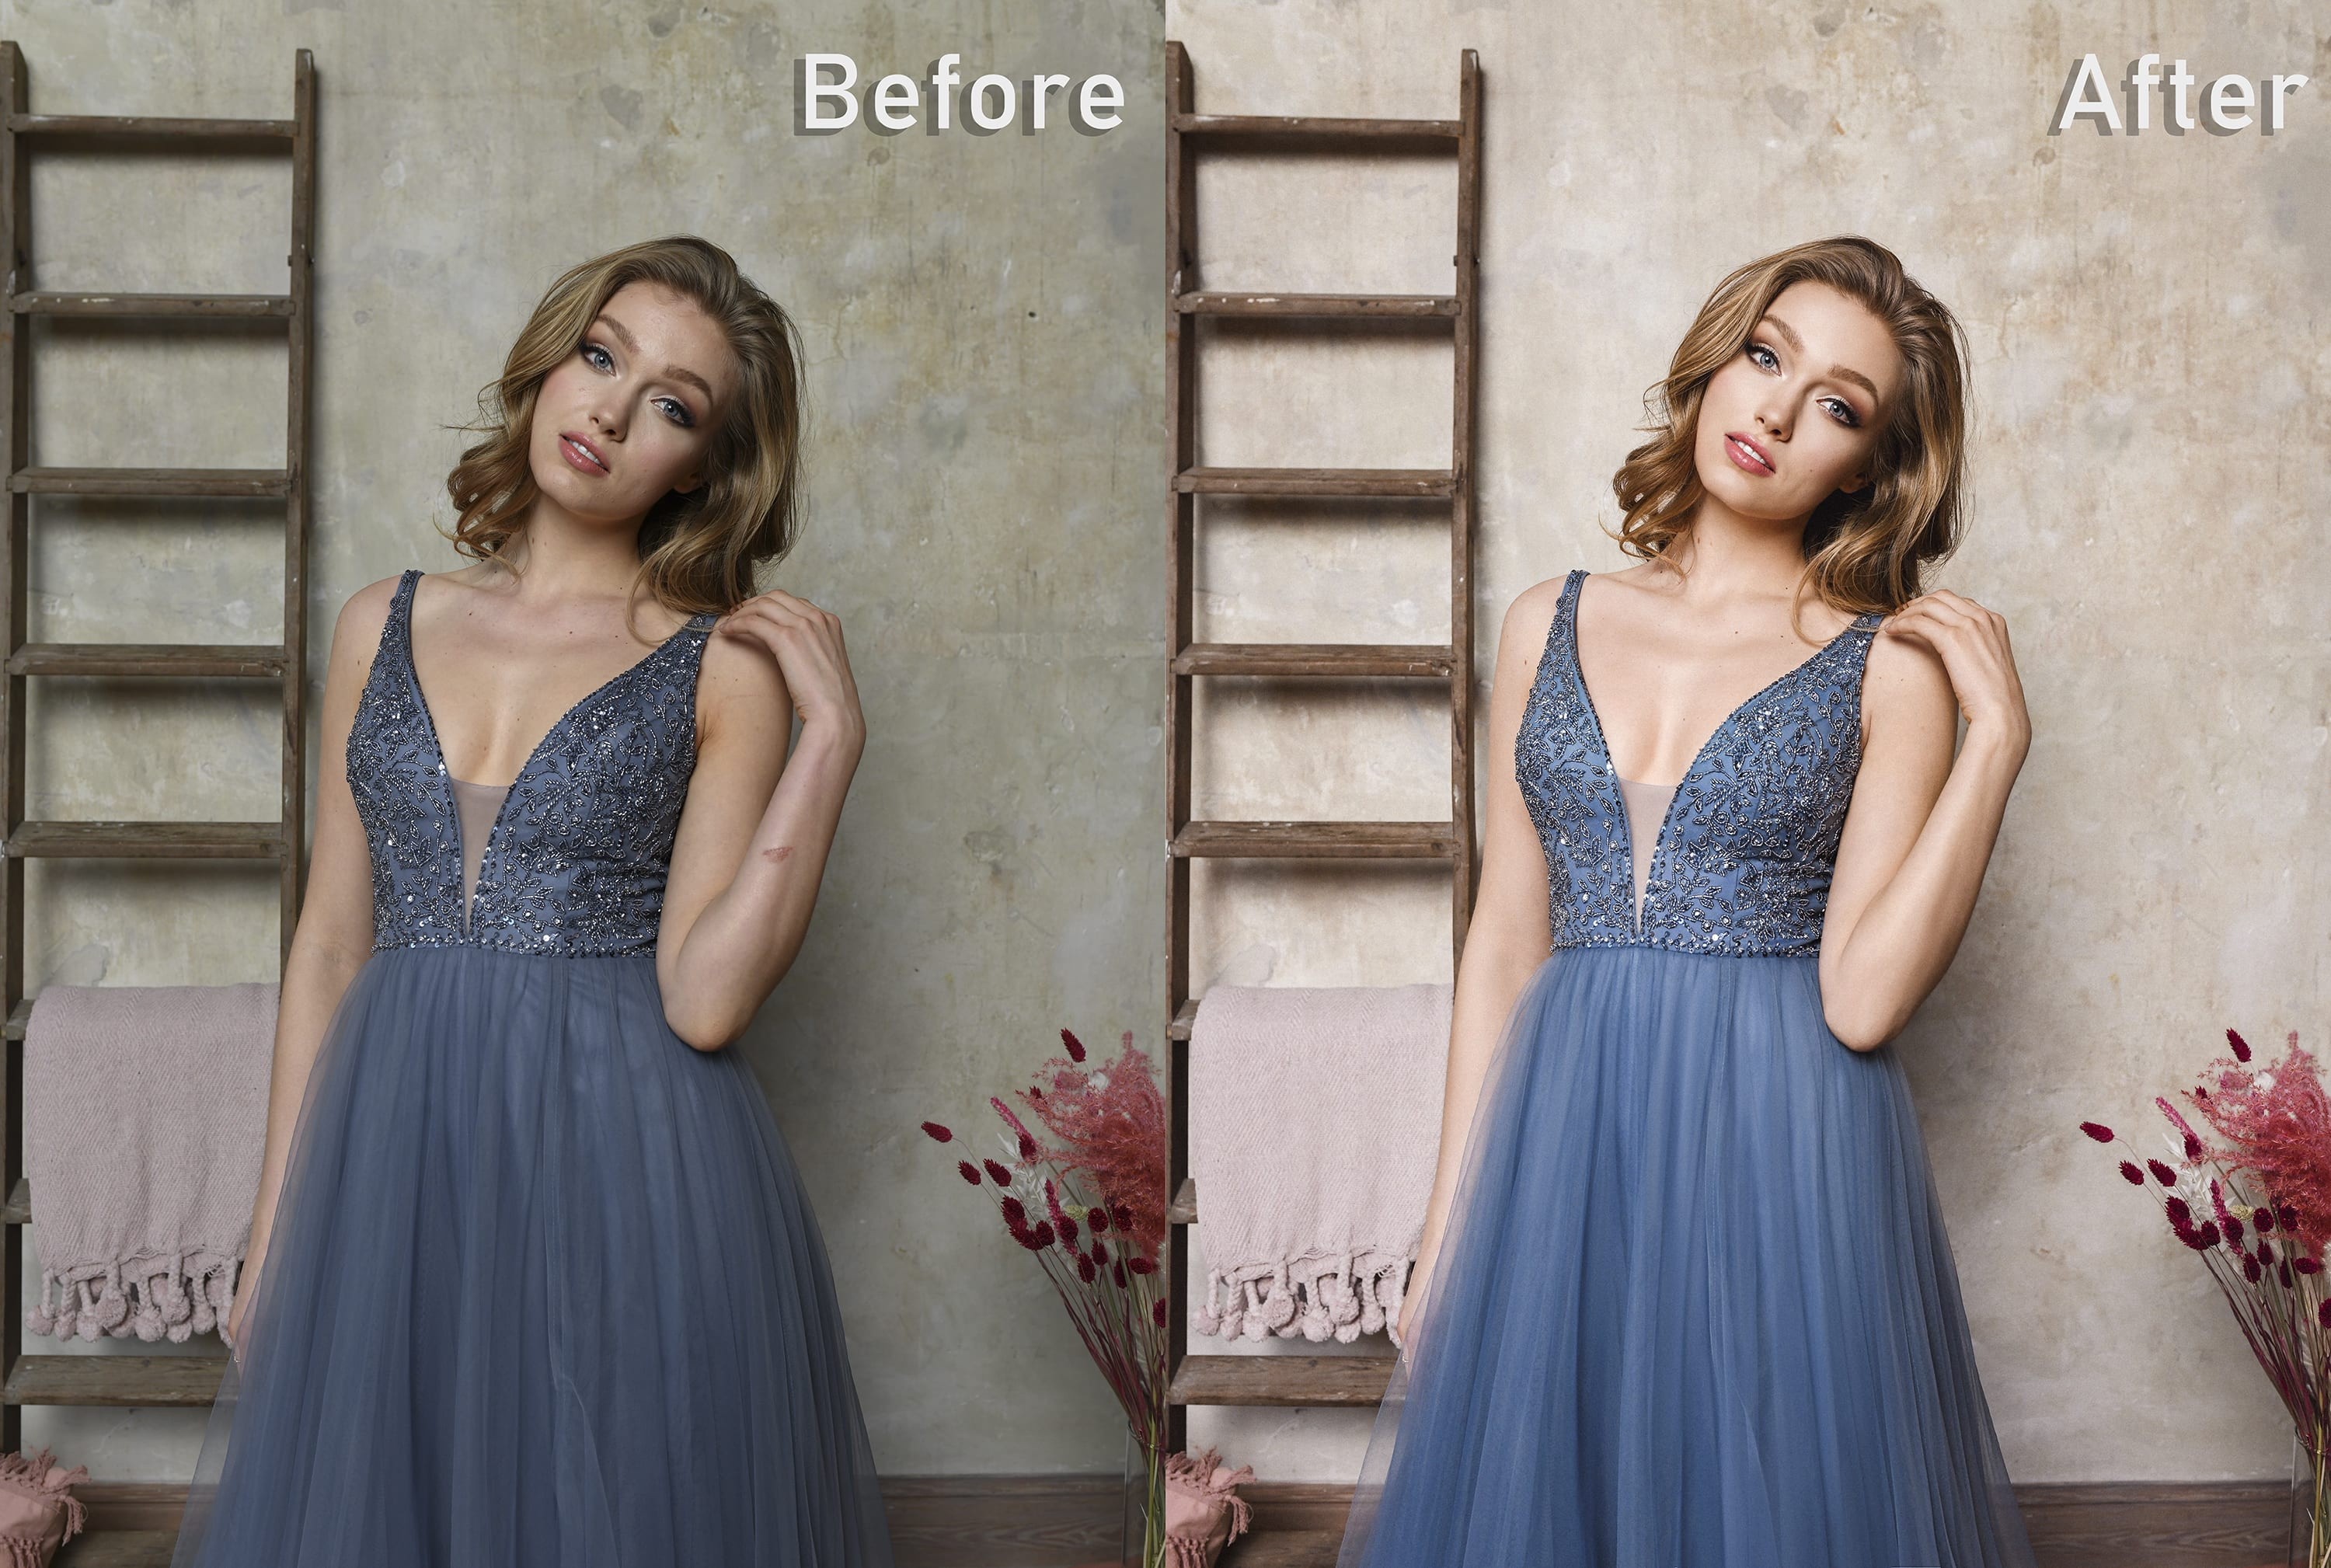 Pro Retouch and Image Editing For You or Your Brand